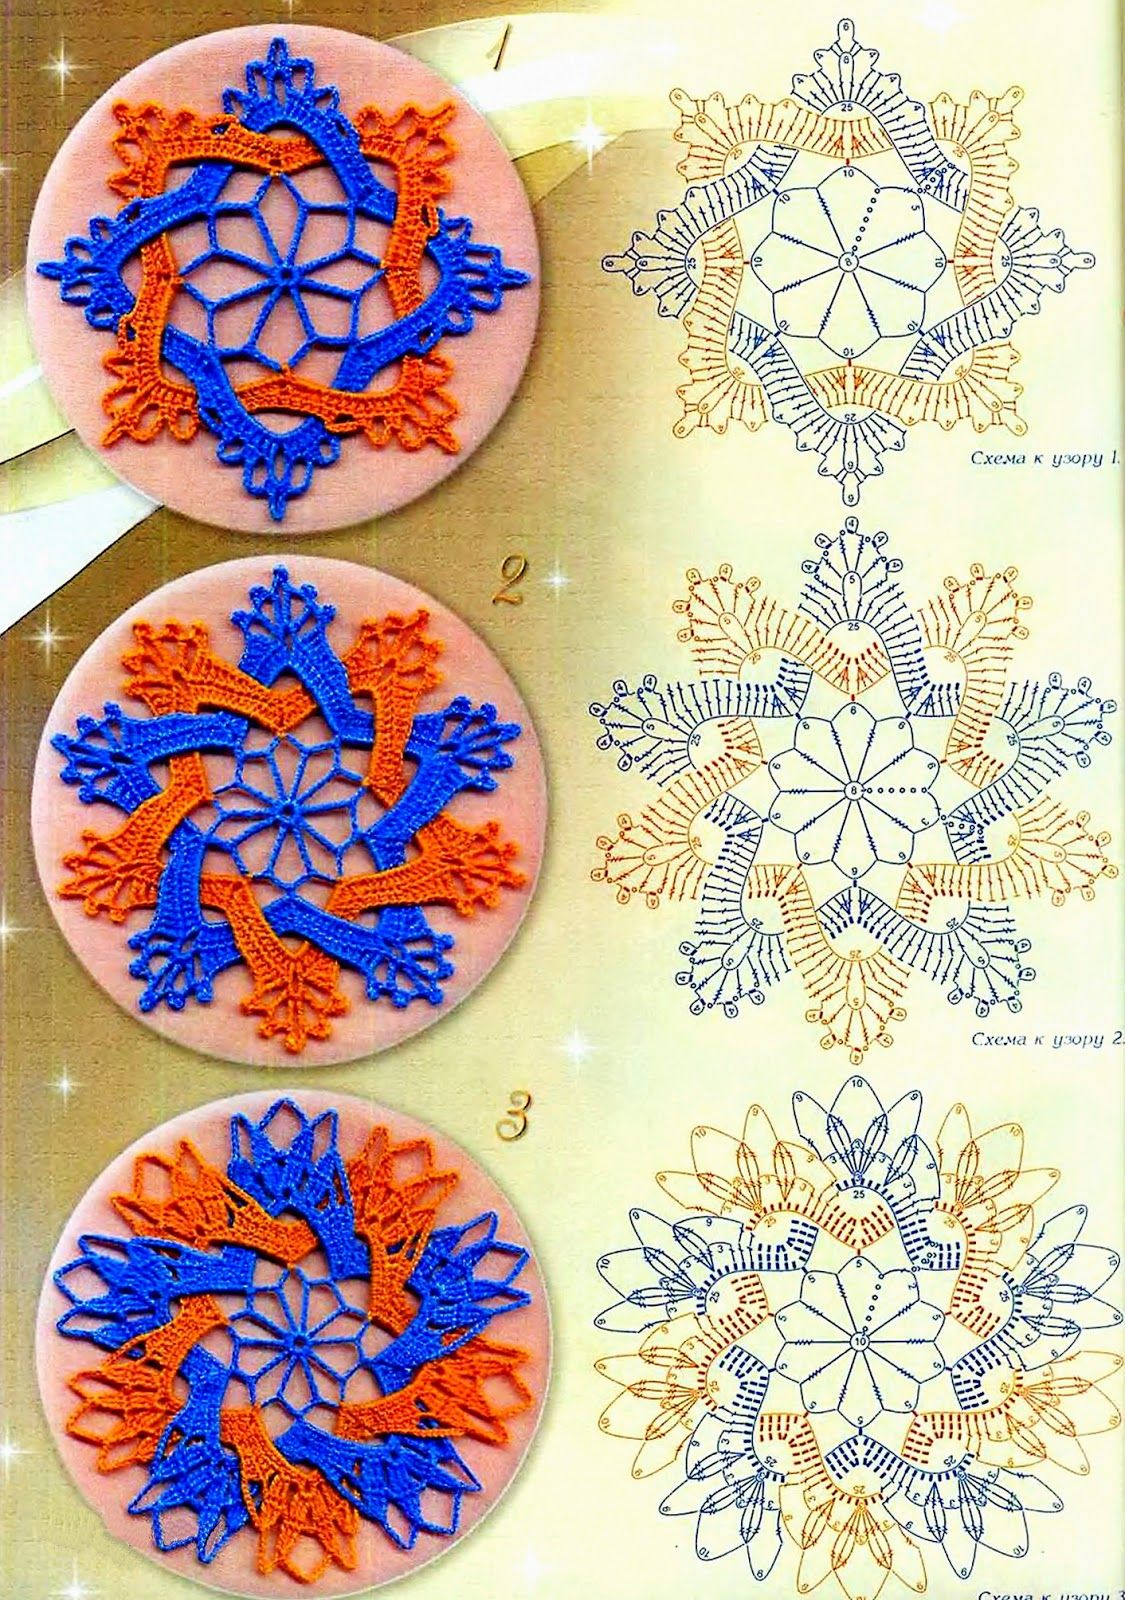 Pin By On Crochet Snowflakes Patterns Pinterest Coaster Diagrams A Few Pretty Knit Or Freeform Granny Squares Diagram